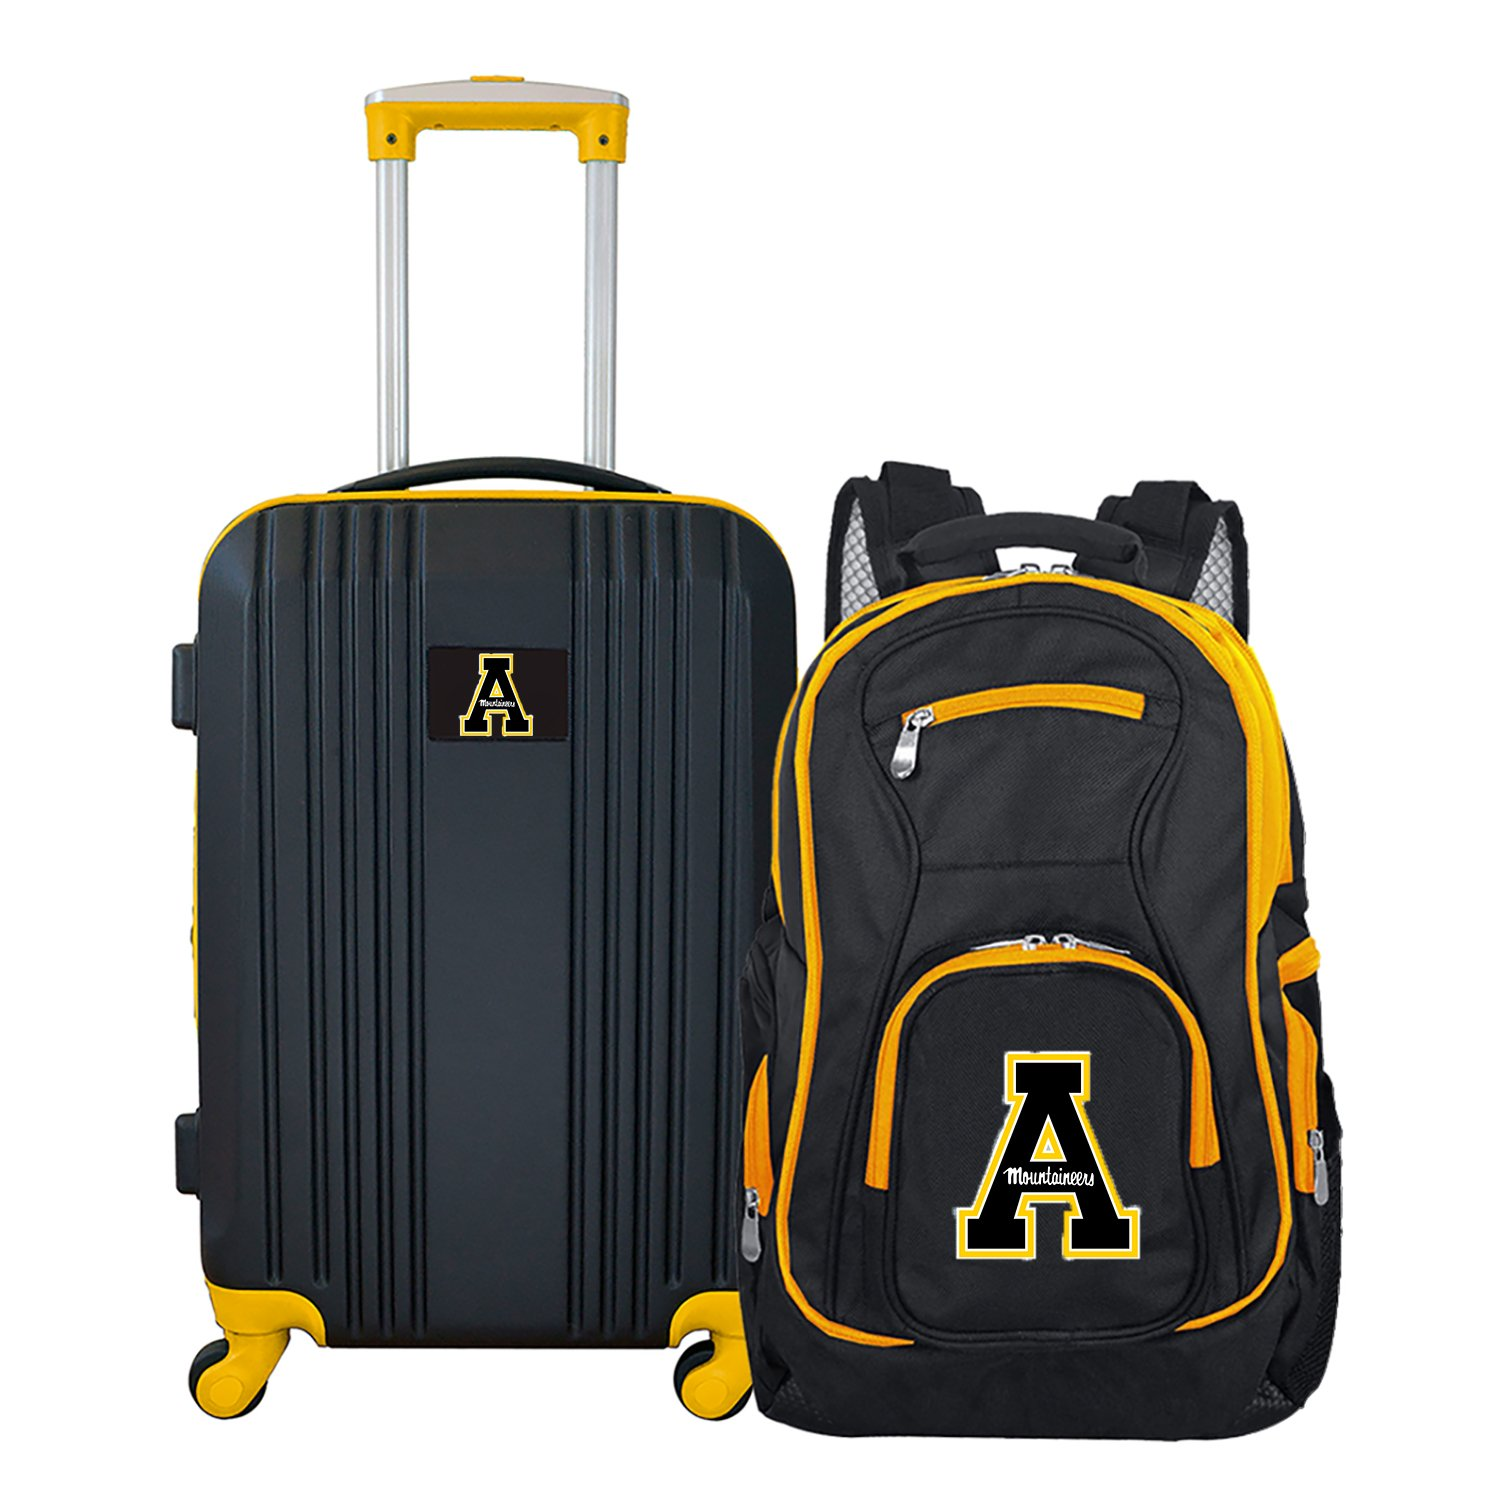 NCAA Appalachian State Mountaineers 2-Piece Luggage Set